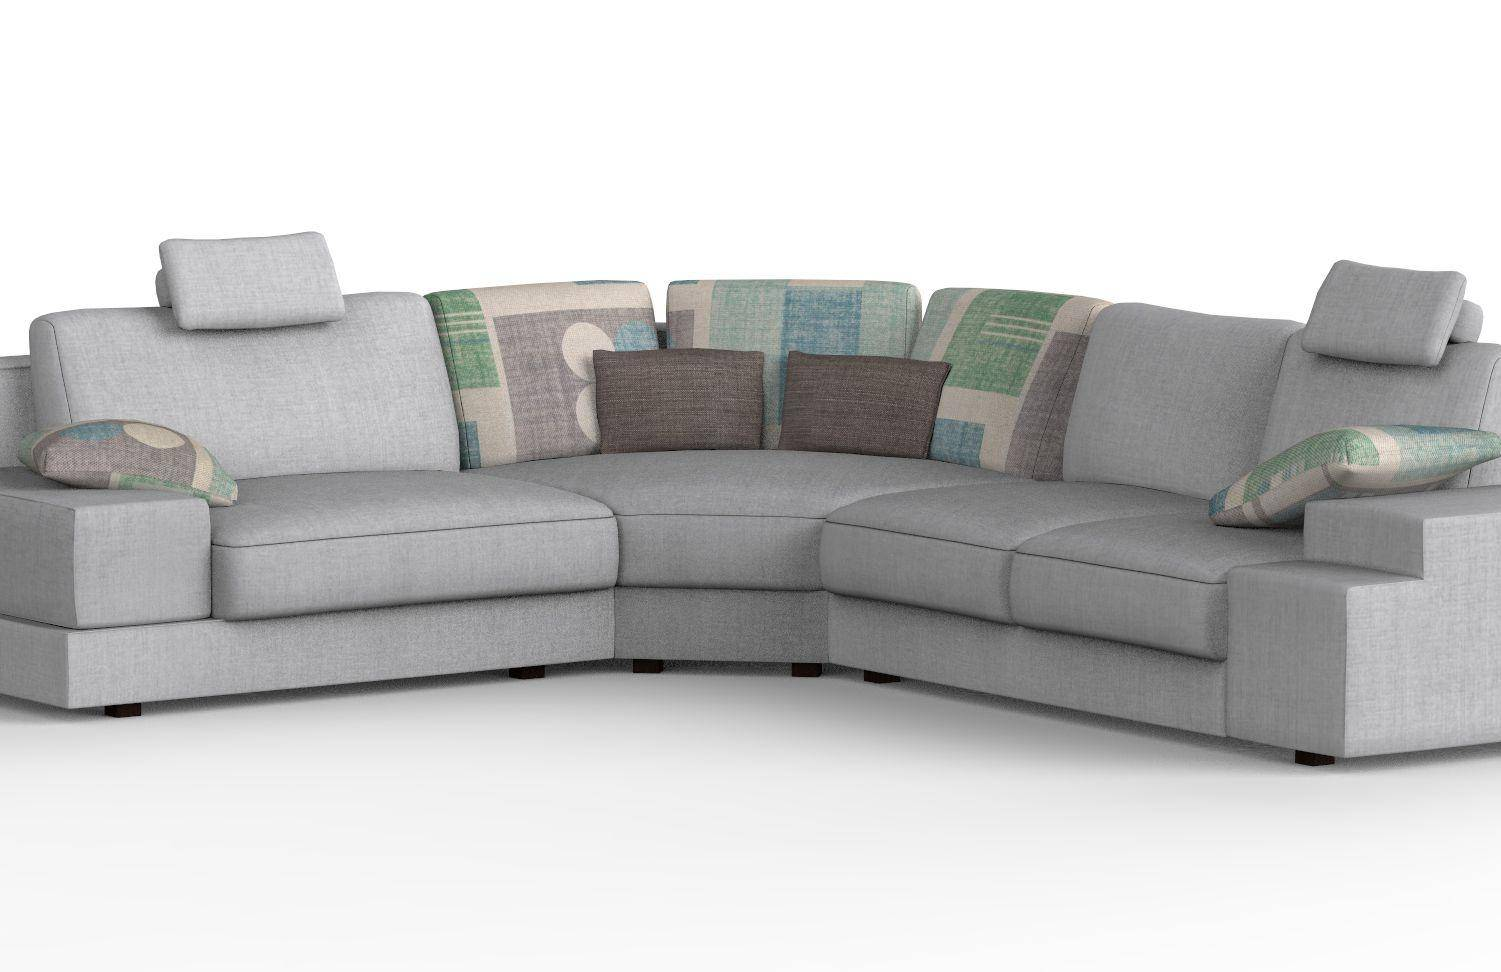 Made Sofa Reviews Soflex Cassandra Modern Grey Fabric Modular Sectional Sofa